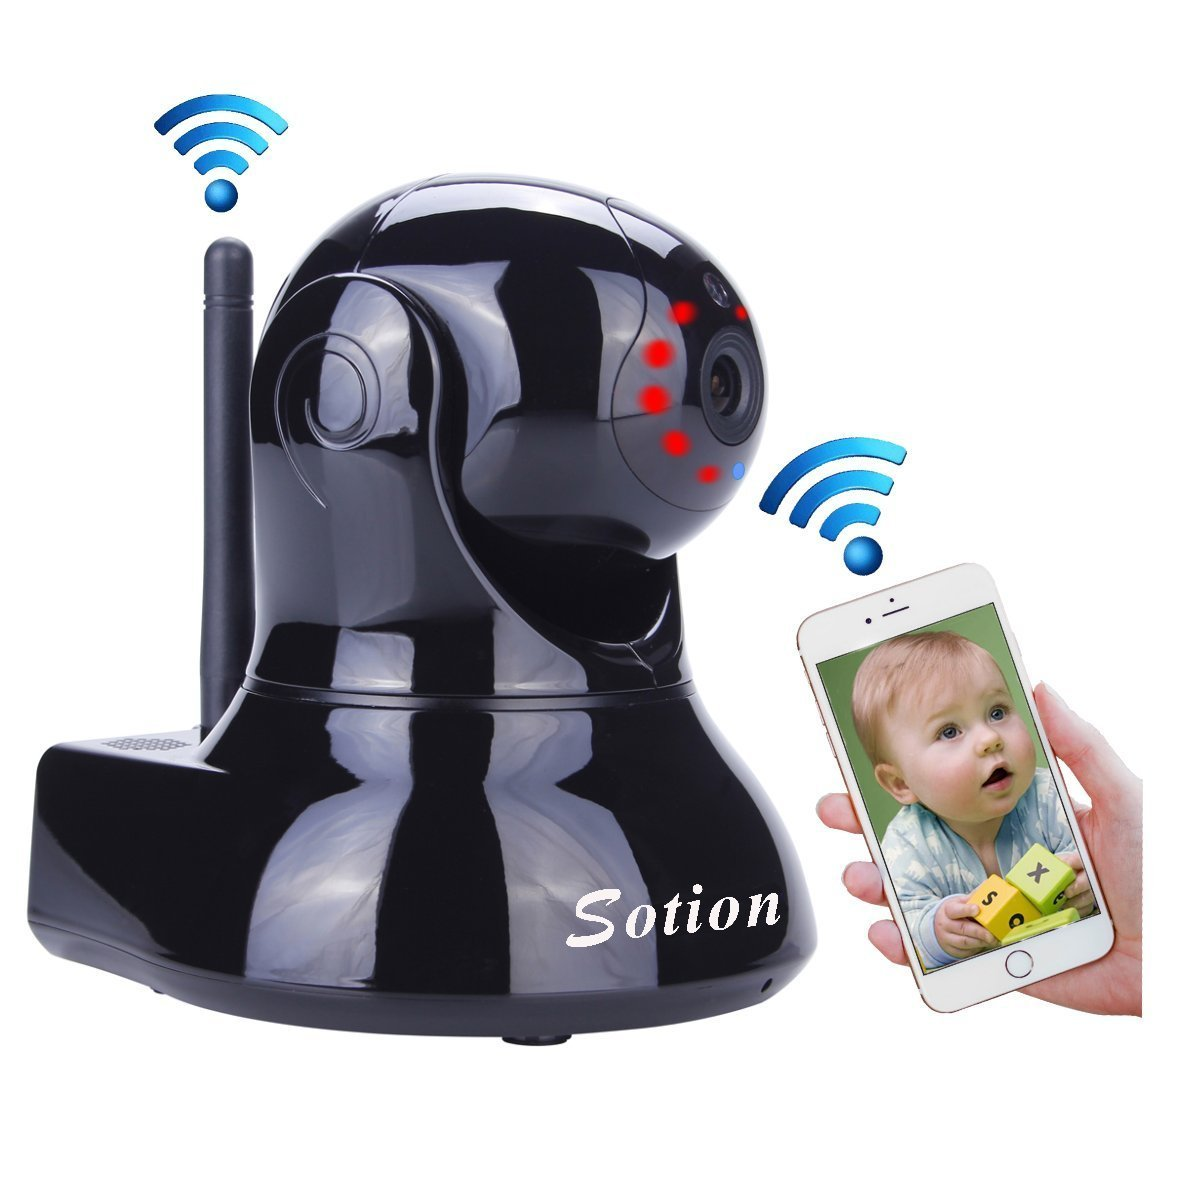 Sotion Super HD Wireless Security IP Camera, Internet Network Home Indoor Surveillance Cameras Monitoring System, Baby / Elder / Nanny / Pet Video Monitor with Pan & Tilt, Two Way Audio & Night Vision